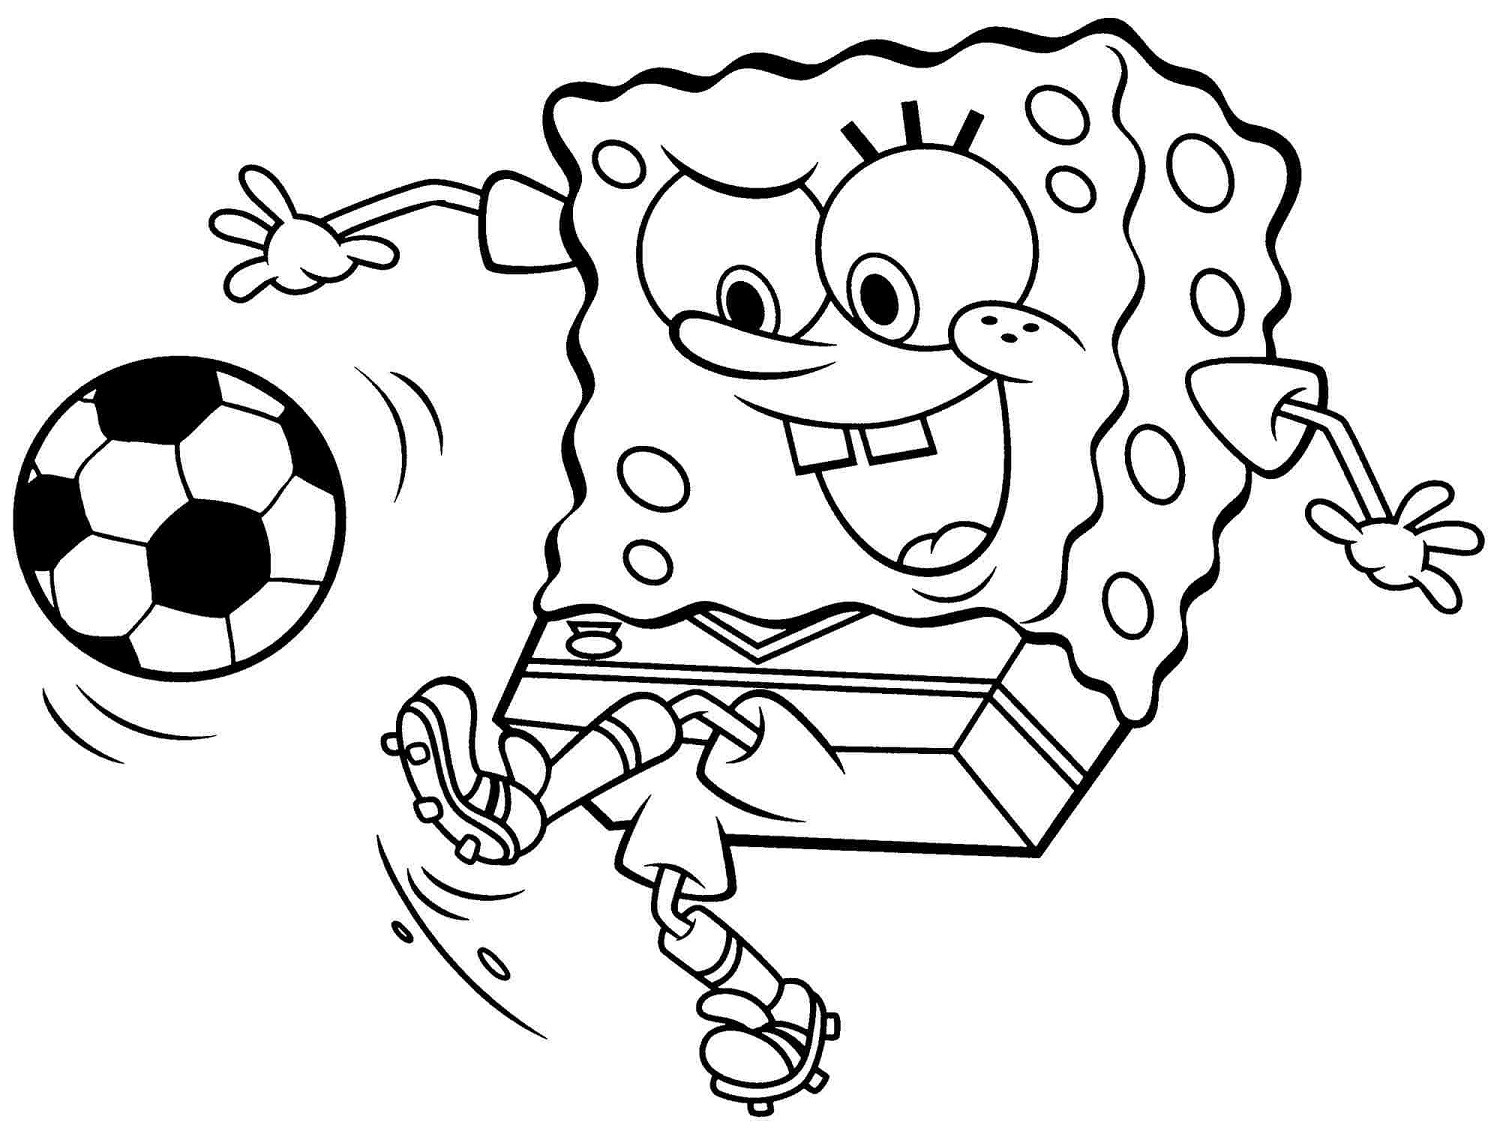 Soccer Coloring Pages For Kids  Football Coloring Pages for Kids Fun Coloring